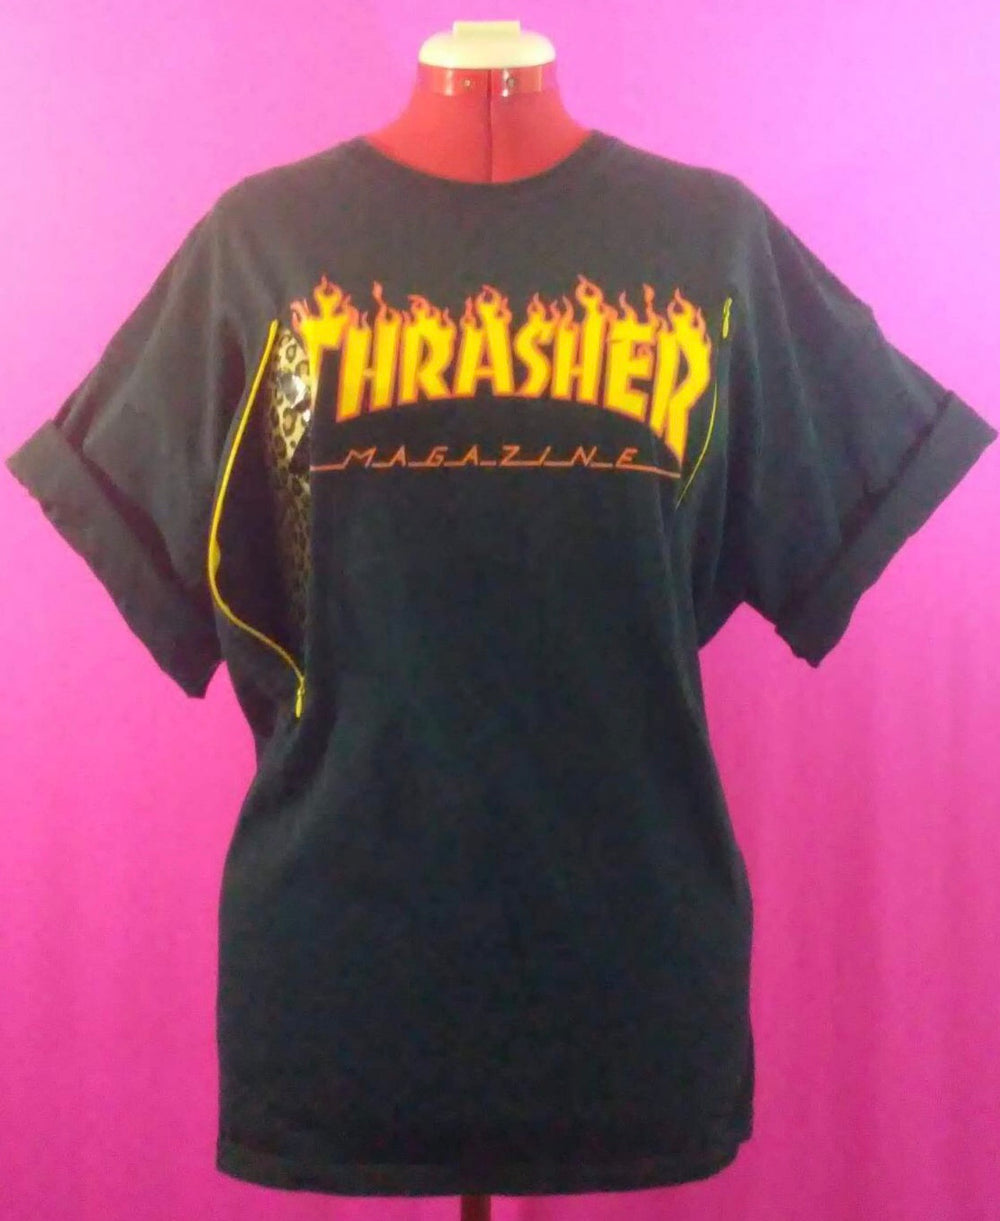 Black Thrasher T-shirt, logo is yellow with flame effect. Shirt is customized for breastfeeding and is on a mannequin against a pink backdrop